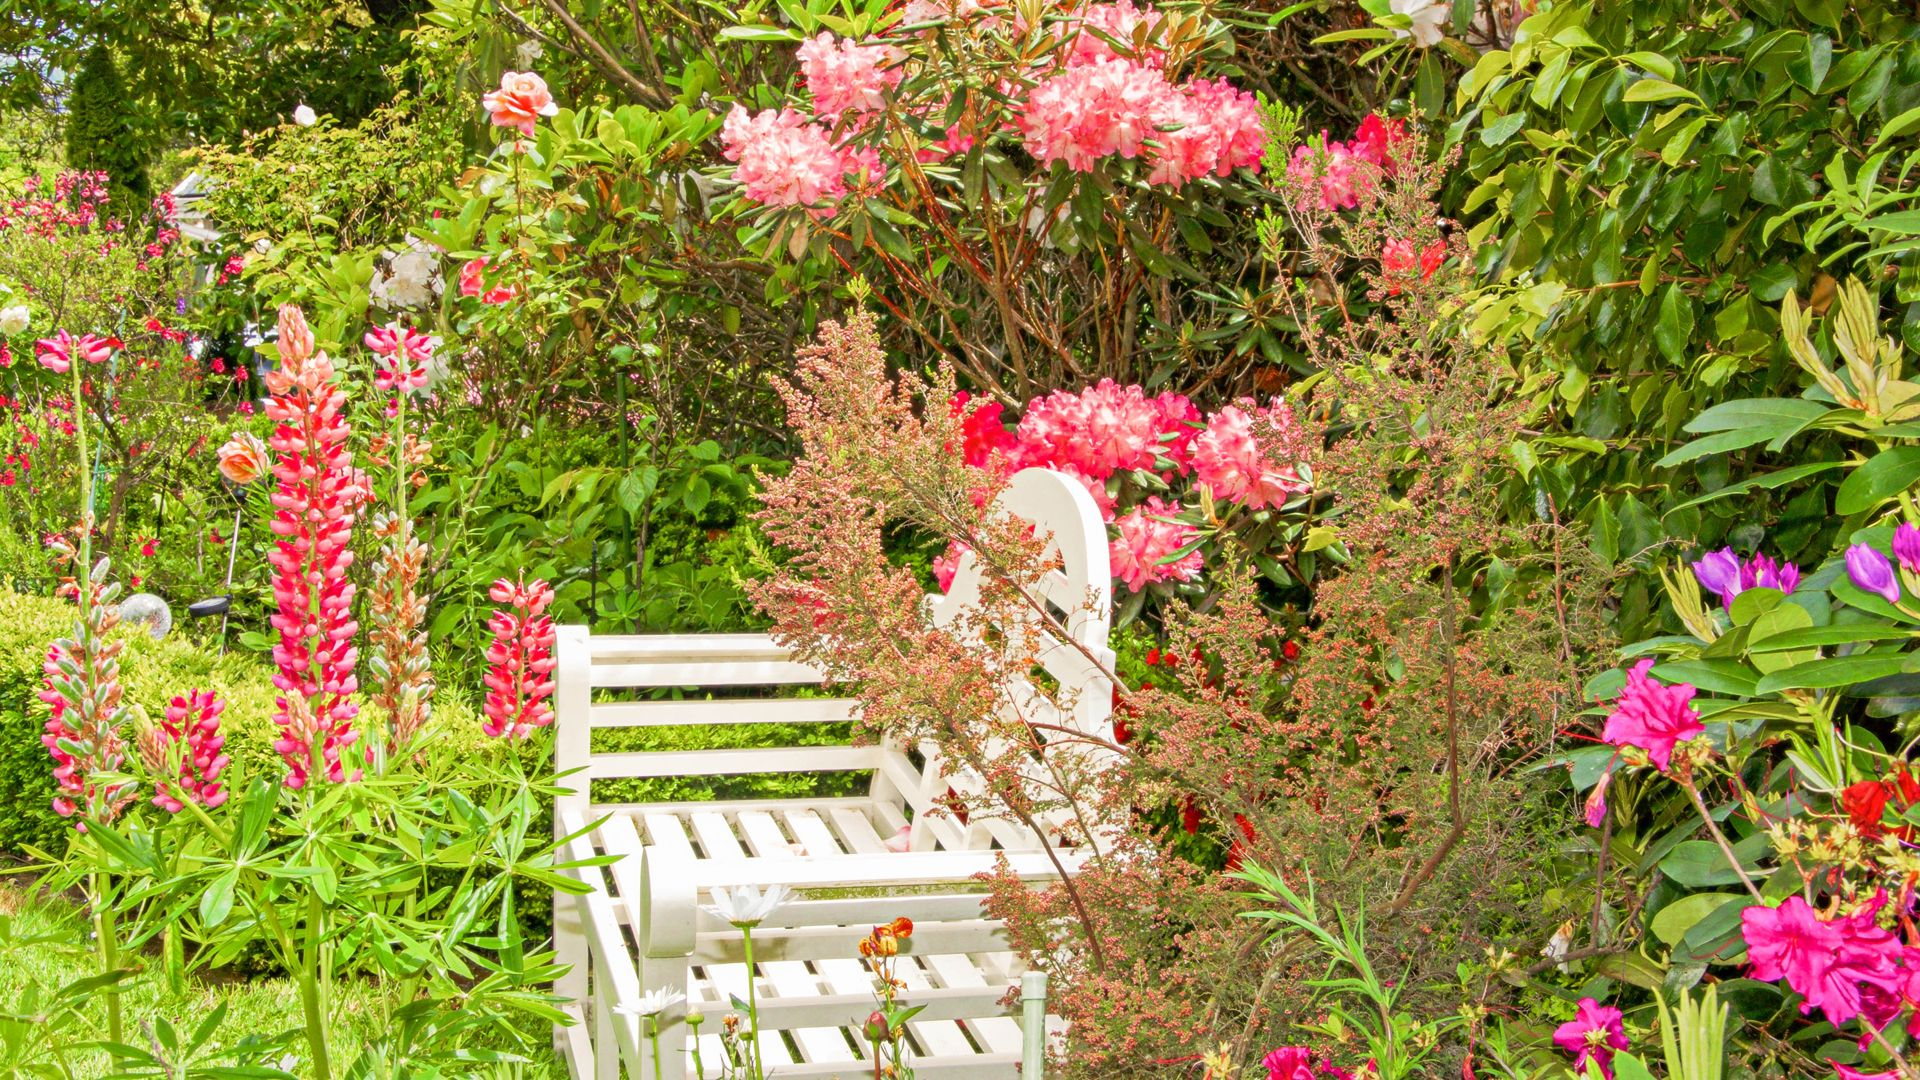 garden seat, a place to enjoy the flowers or read a book